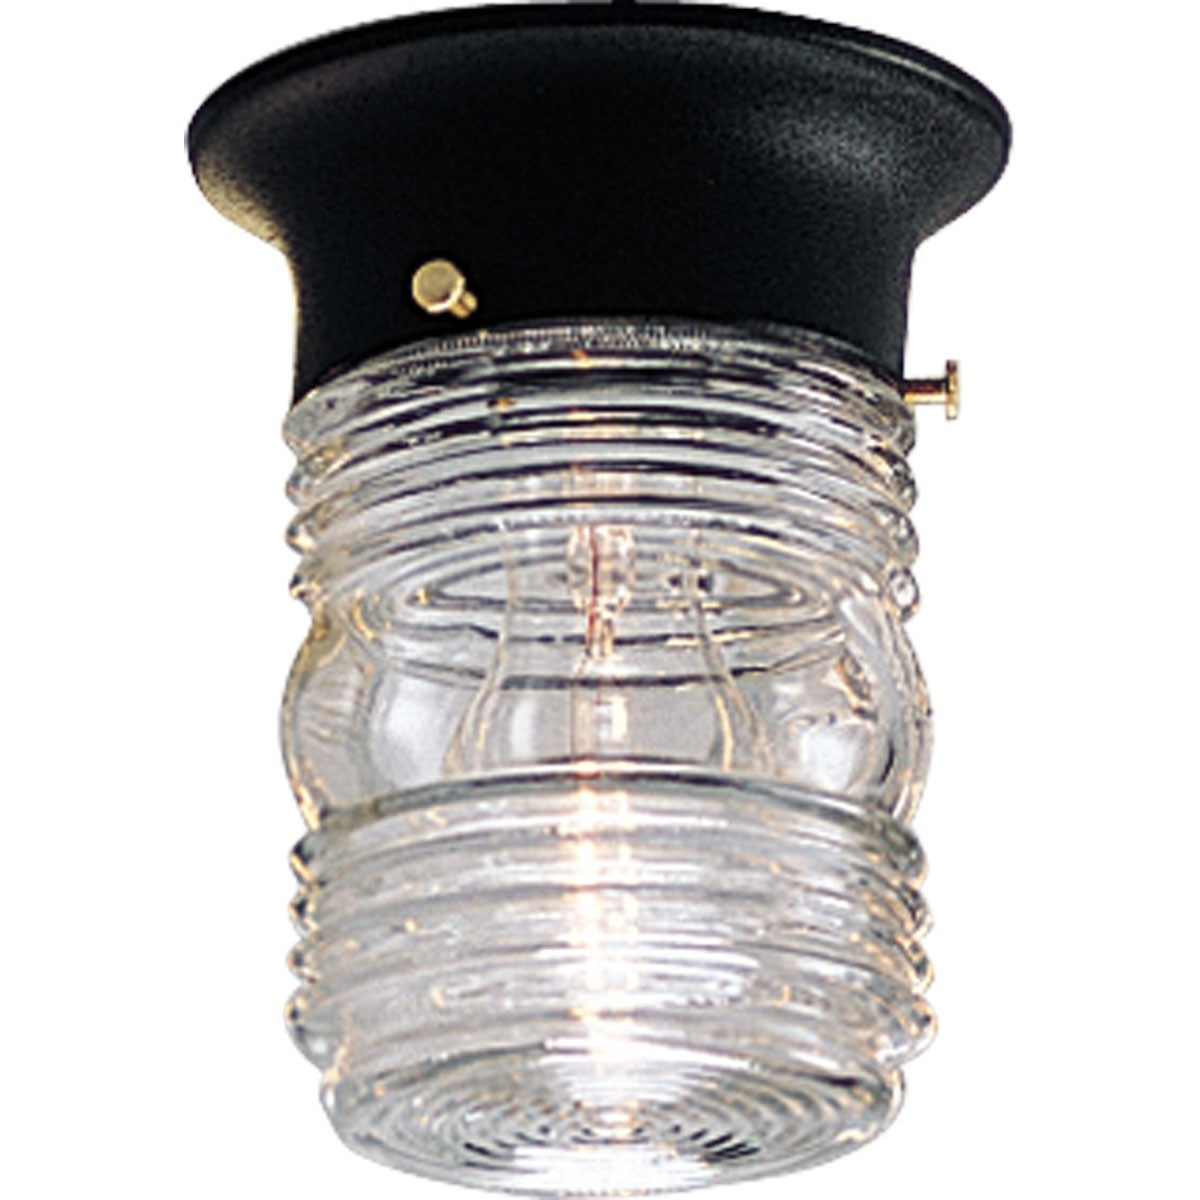 Most Recently Released Outdoor Ceiling Flush Mount Light Fixture With Clear Marine Glass Within Outdoor Ceiling Flush Mount Lights (View 19 of 20)